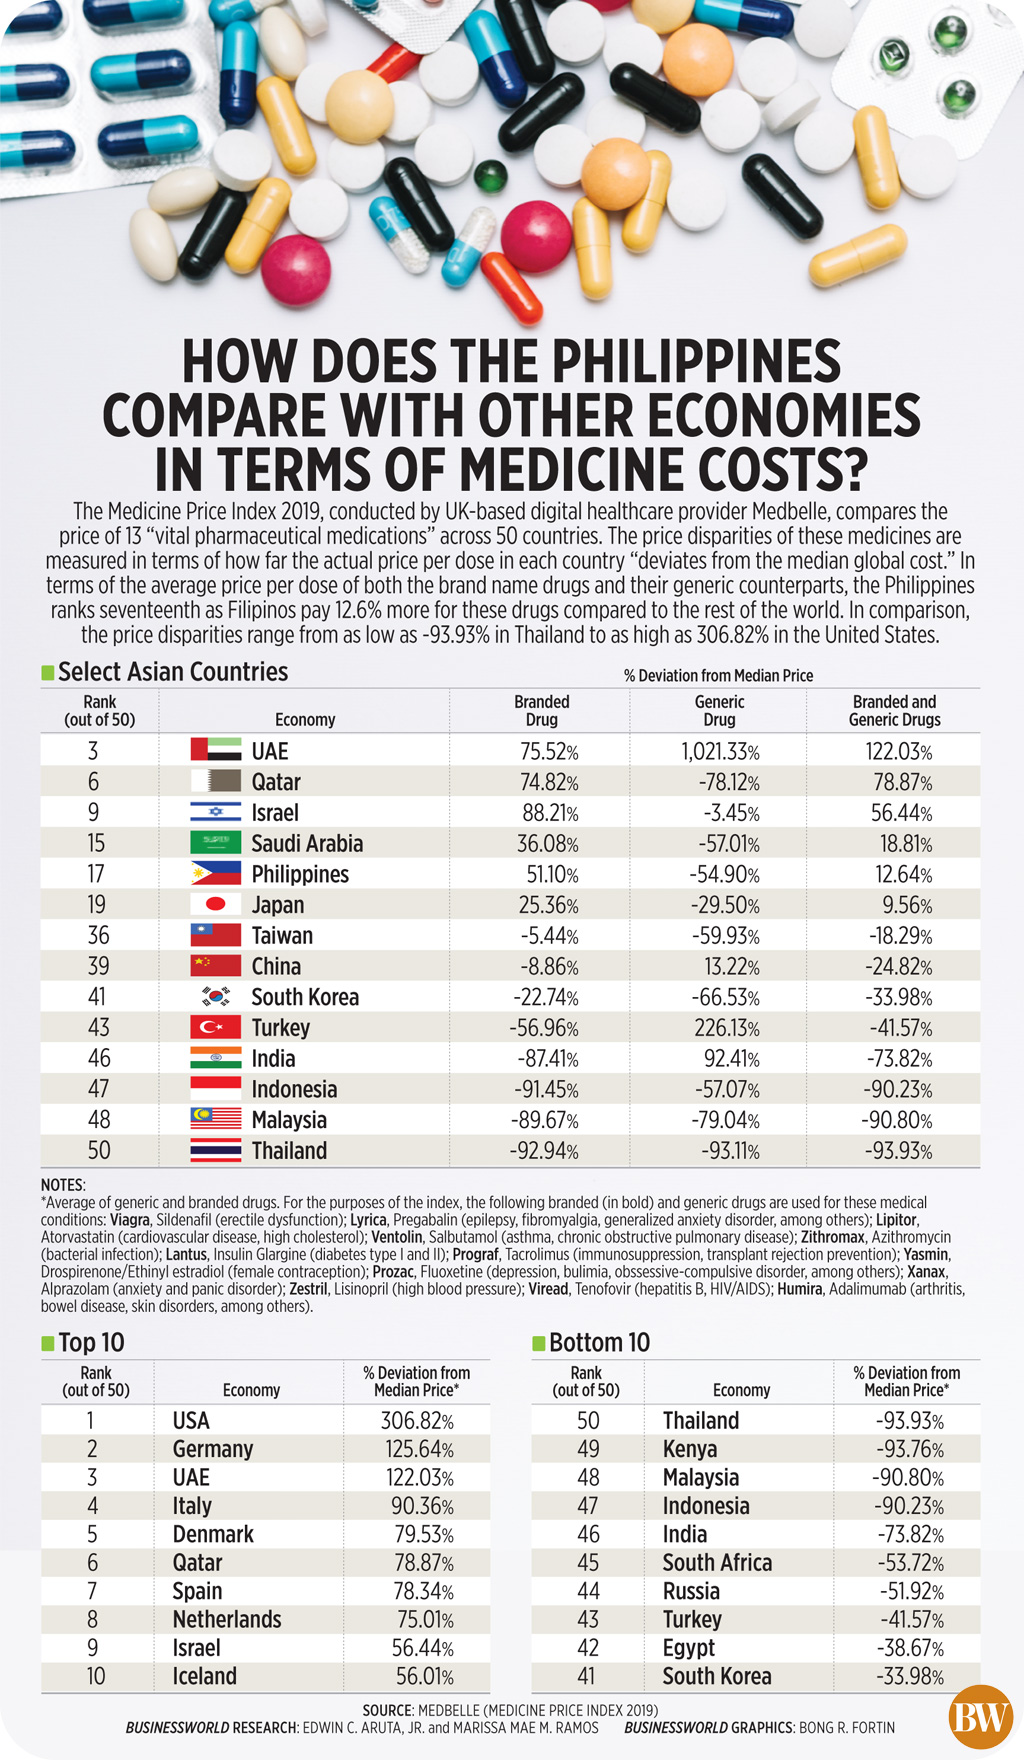 How does the Philippines compare with other economies in terms of medicine costs?